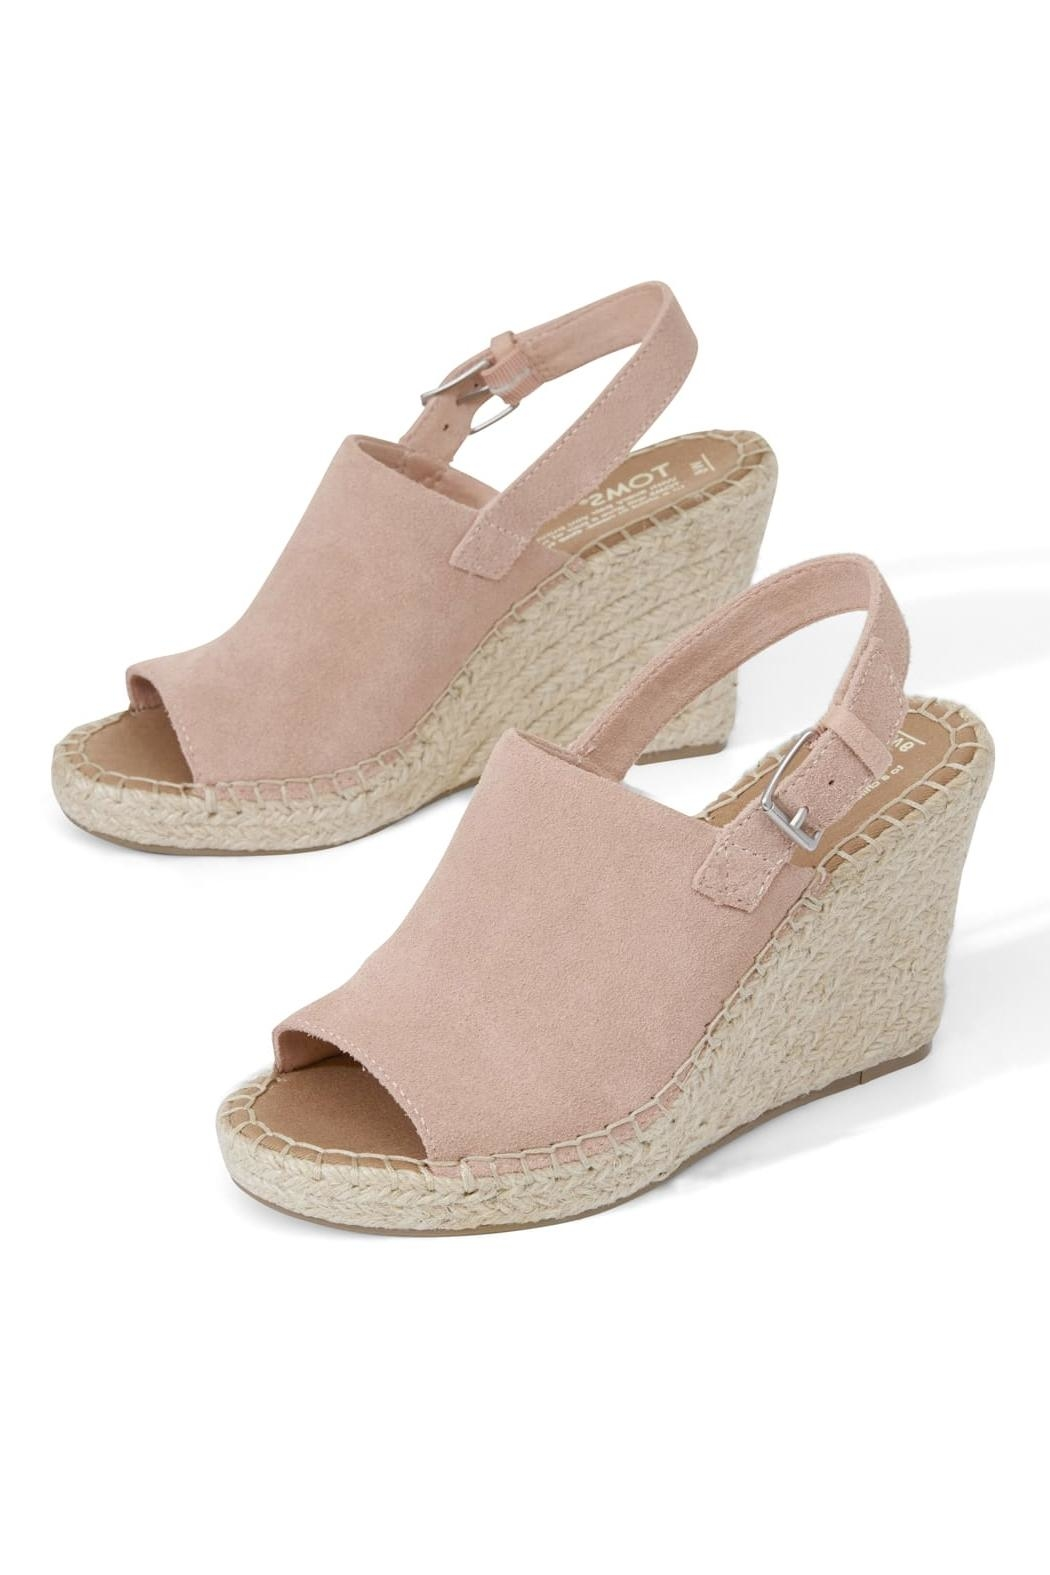 dbb9e9c9b63 TOMS Monica Wedge from California by pinkadot — Shoptiques